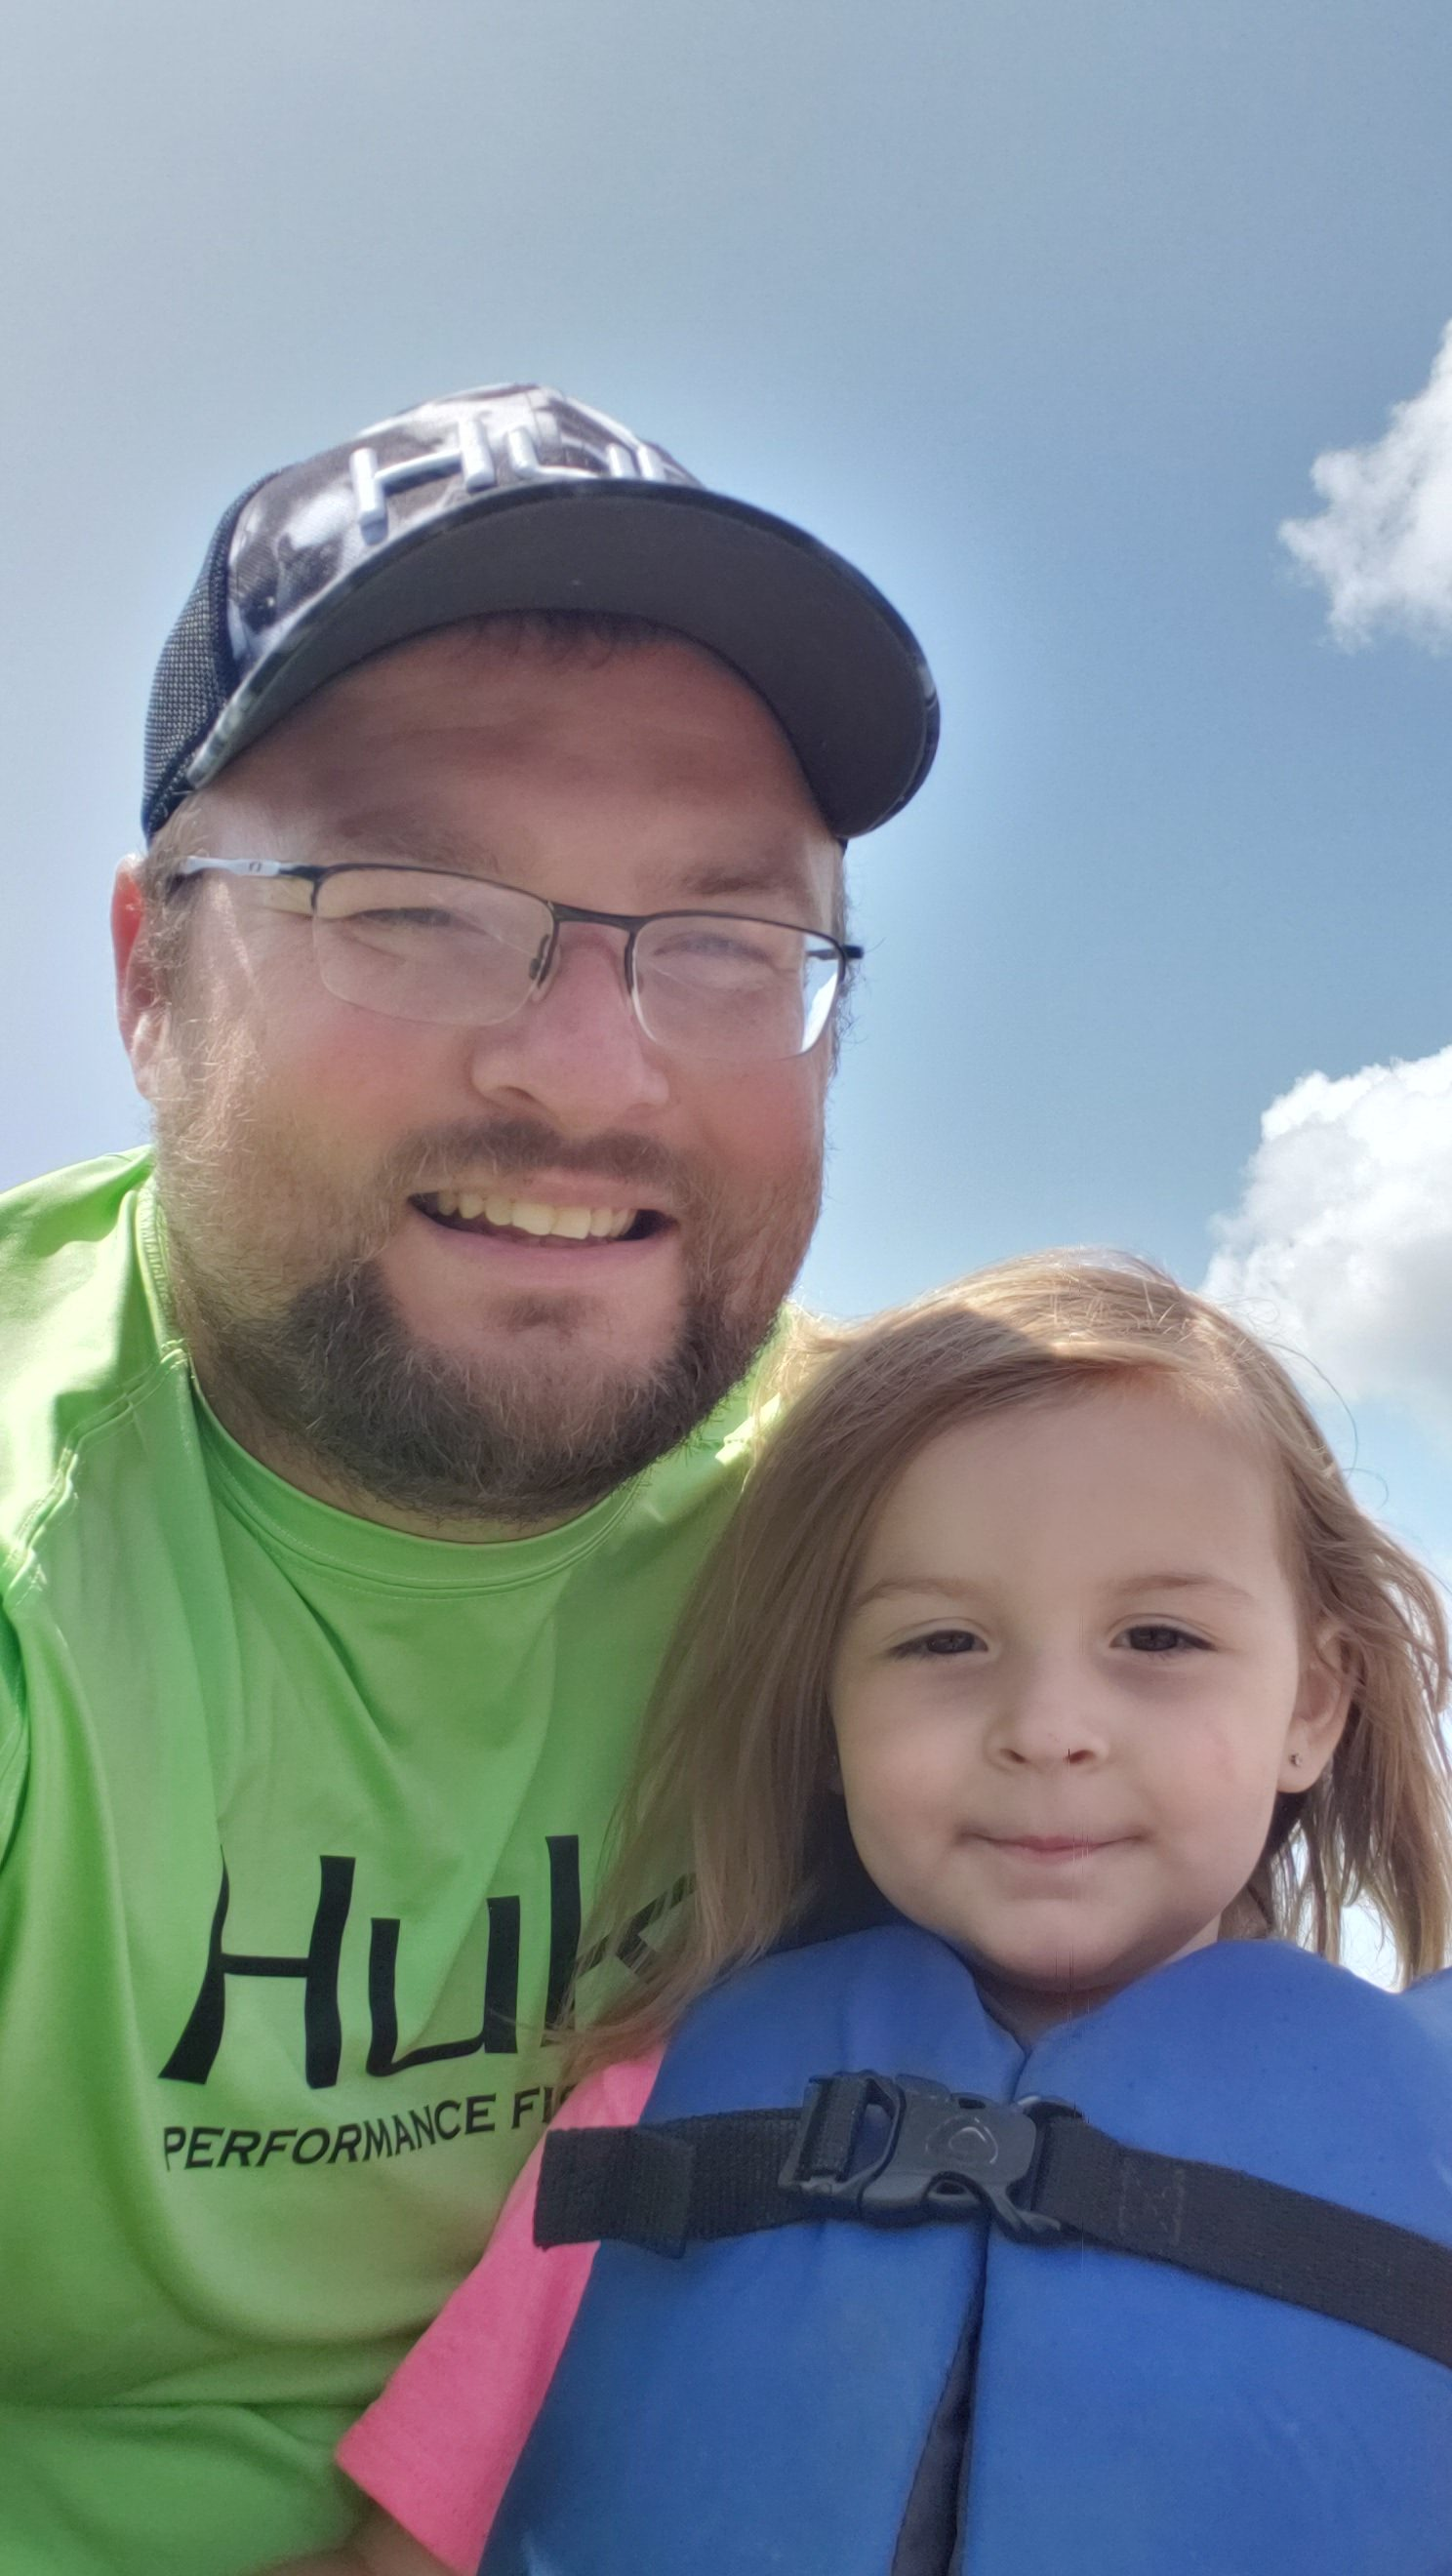 Brian McLucas and his daughter Addilyn smile outside. Addilyn is wearing a life vest and the blue sky is behind them.